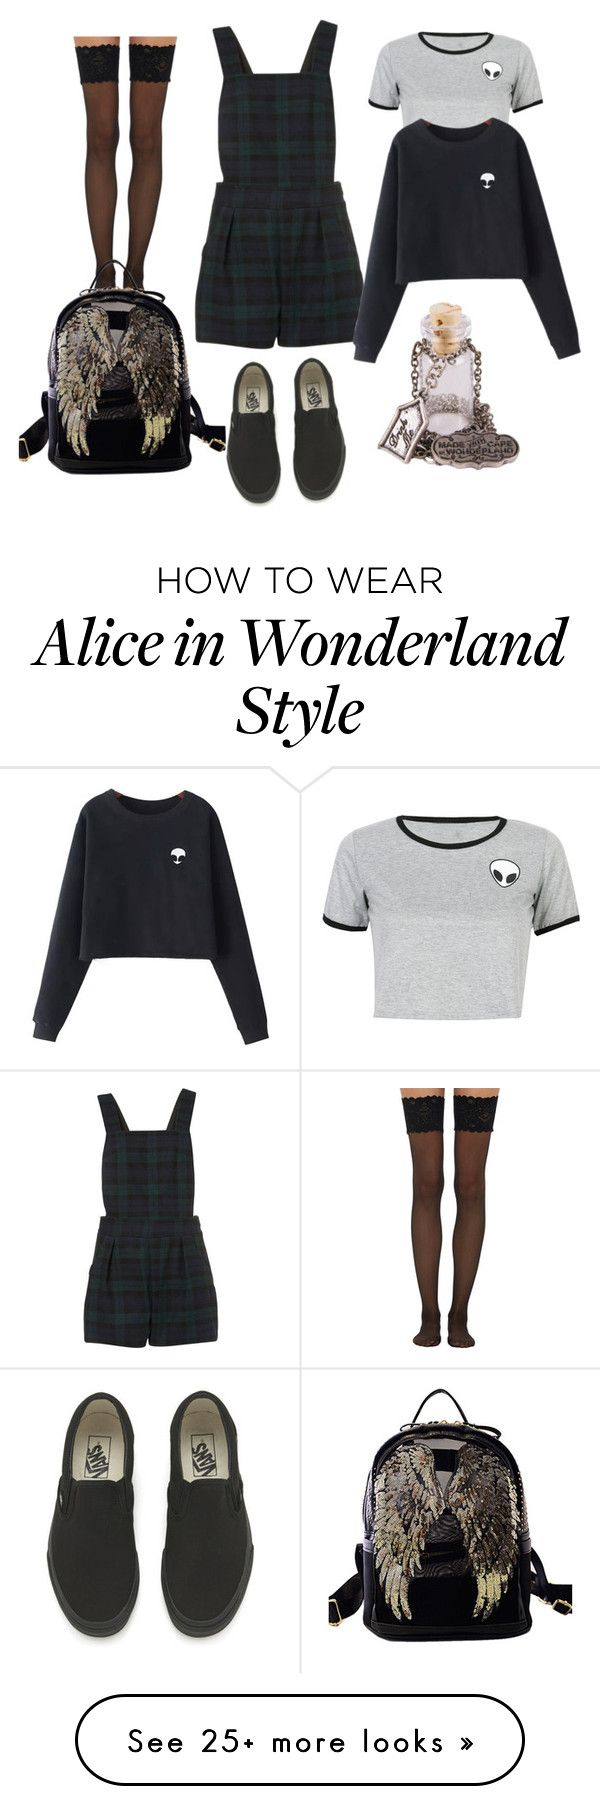 """School"" by claudia-glorioso on Polyvore featuring WithChic, Vans, Disney Couture, Wolford and Chicnova Fashion"